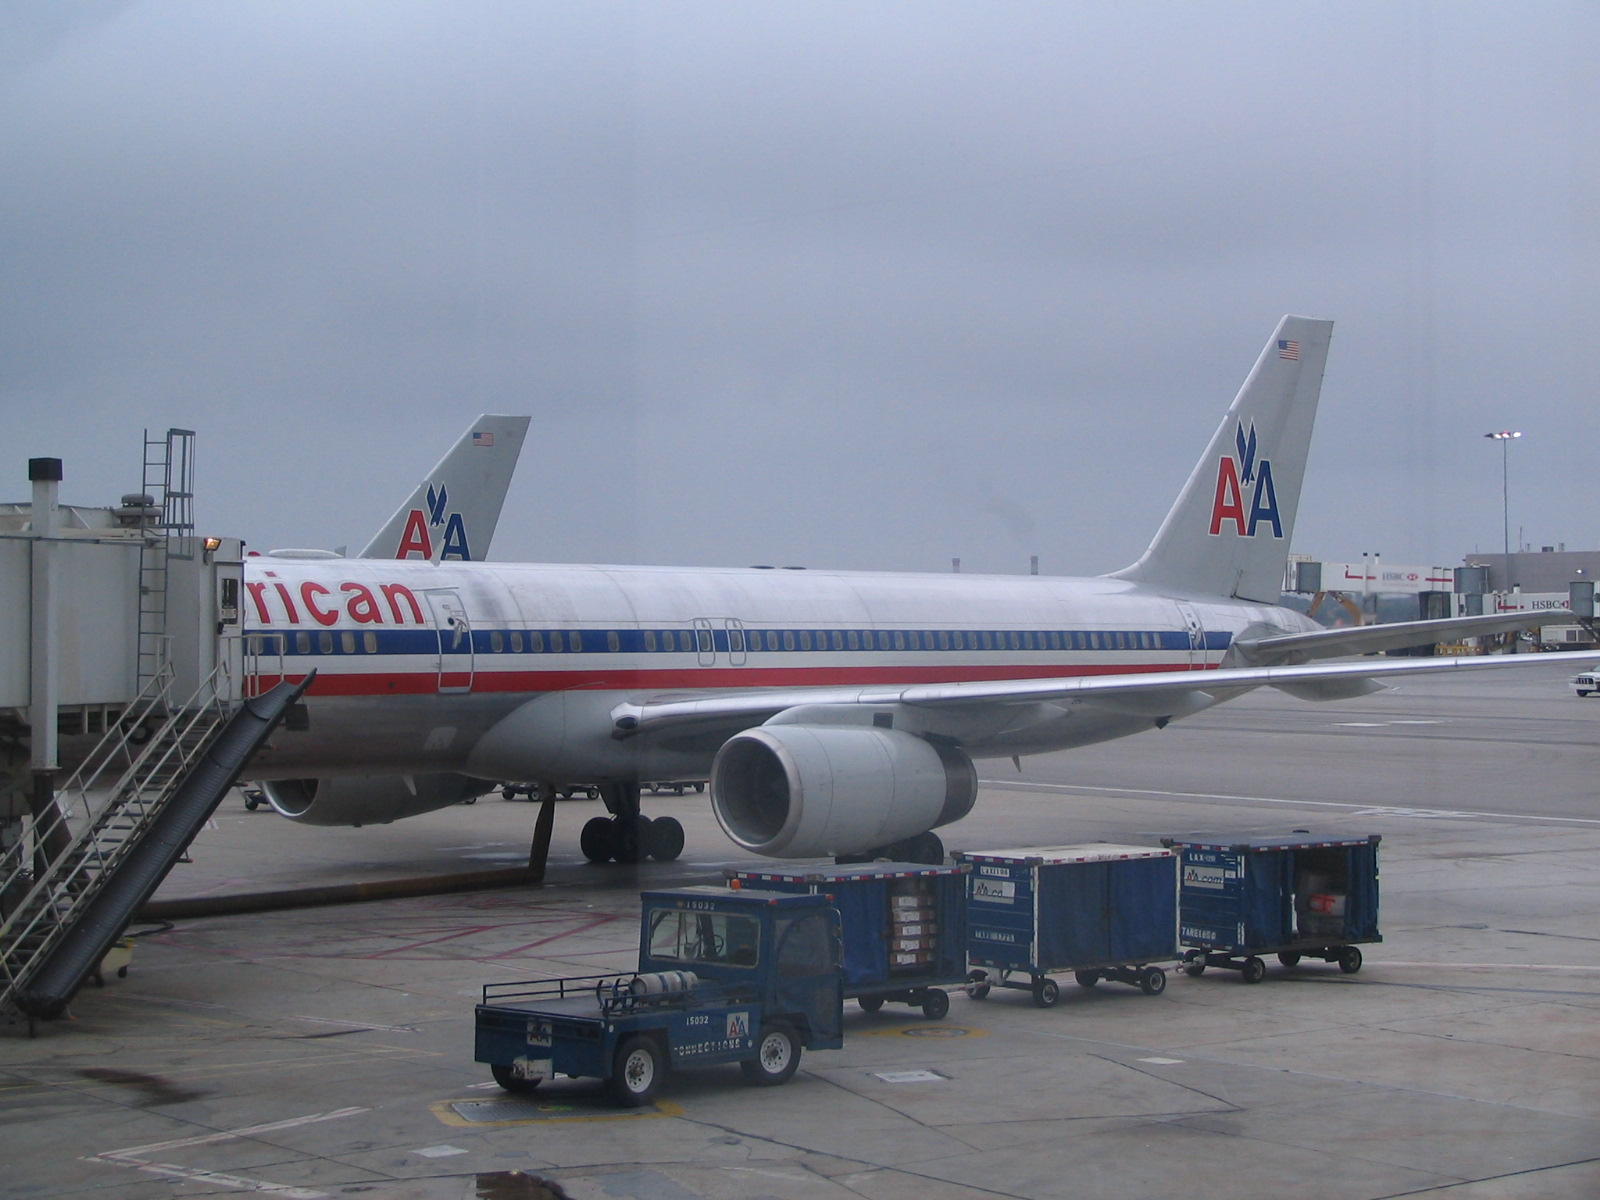 American Airlines Corporate Complaints Number 1